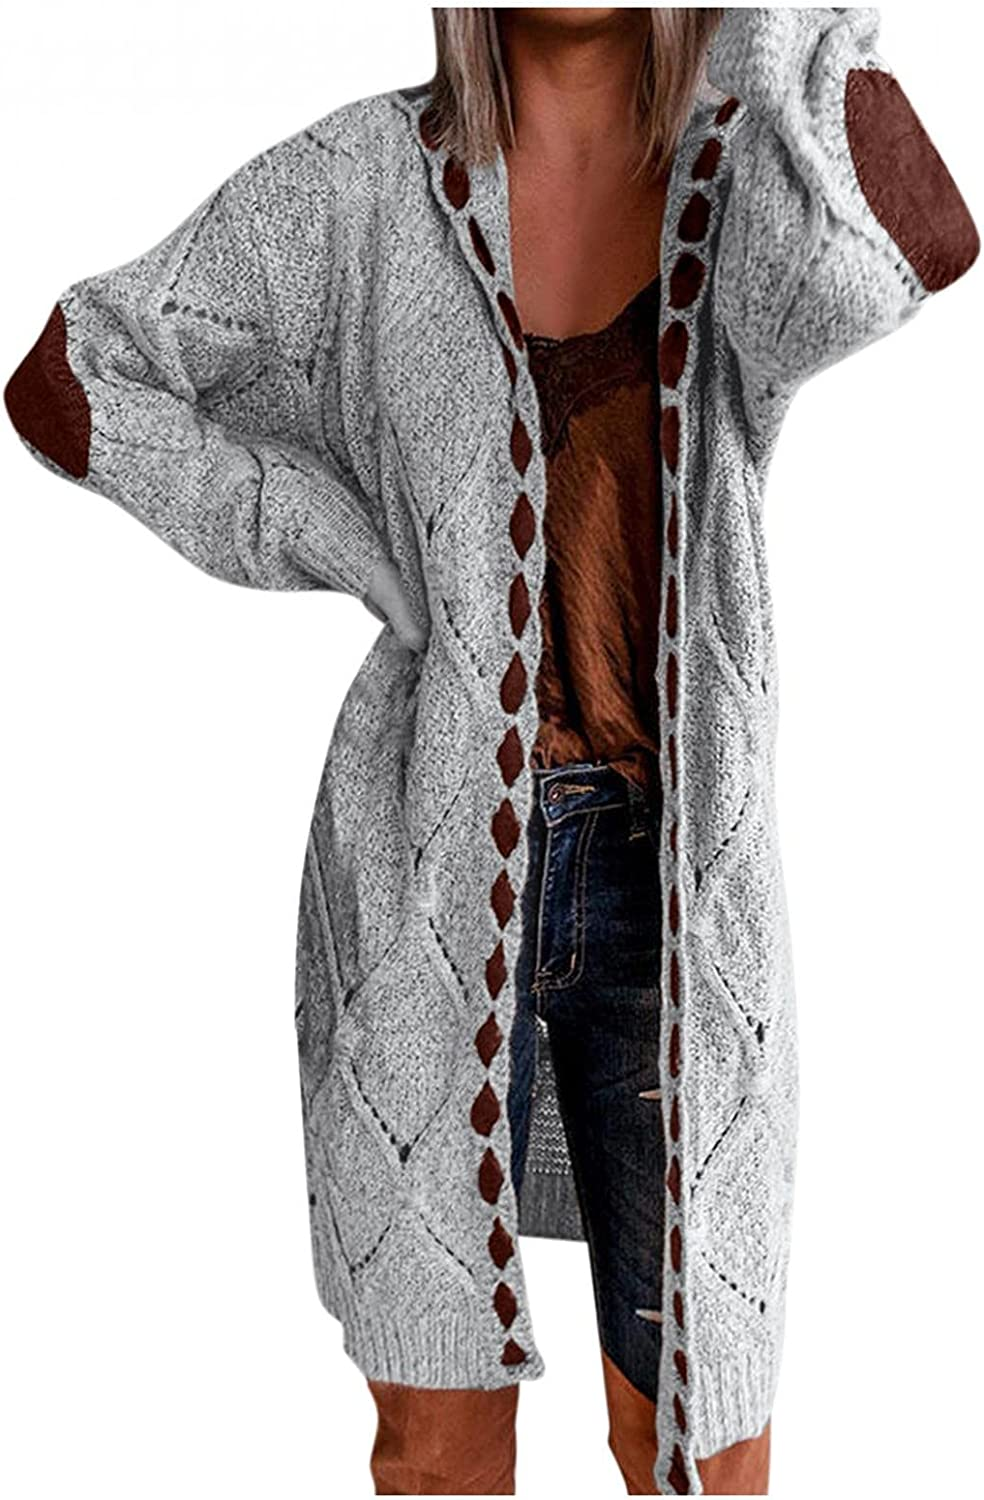 Eduavar Sweaters for Women Cardigan Long Sleeve Cable Knit Sweater Open Front Cardigan Tops Fall Casual Loose Long Coat